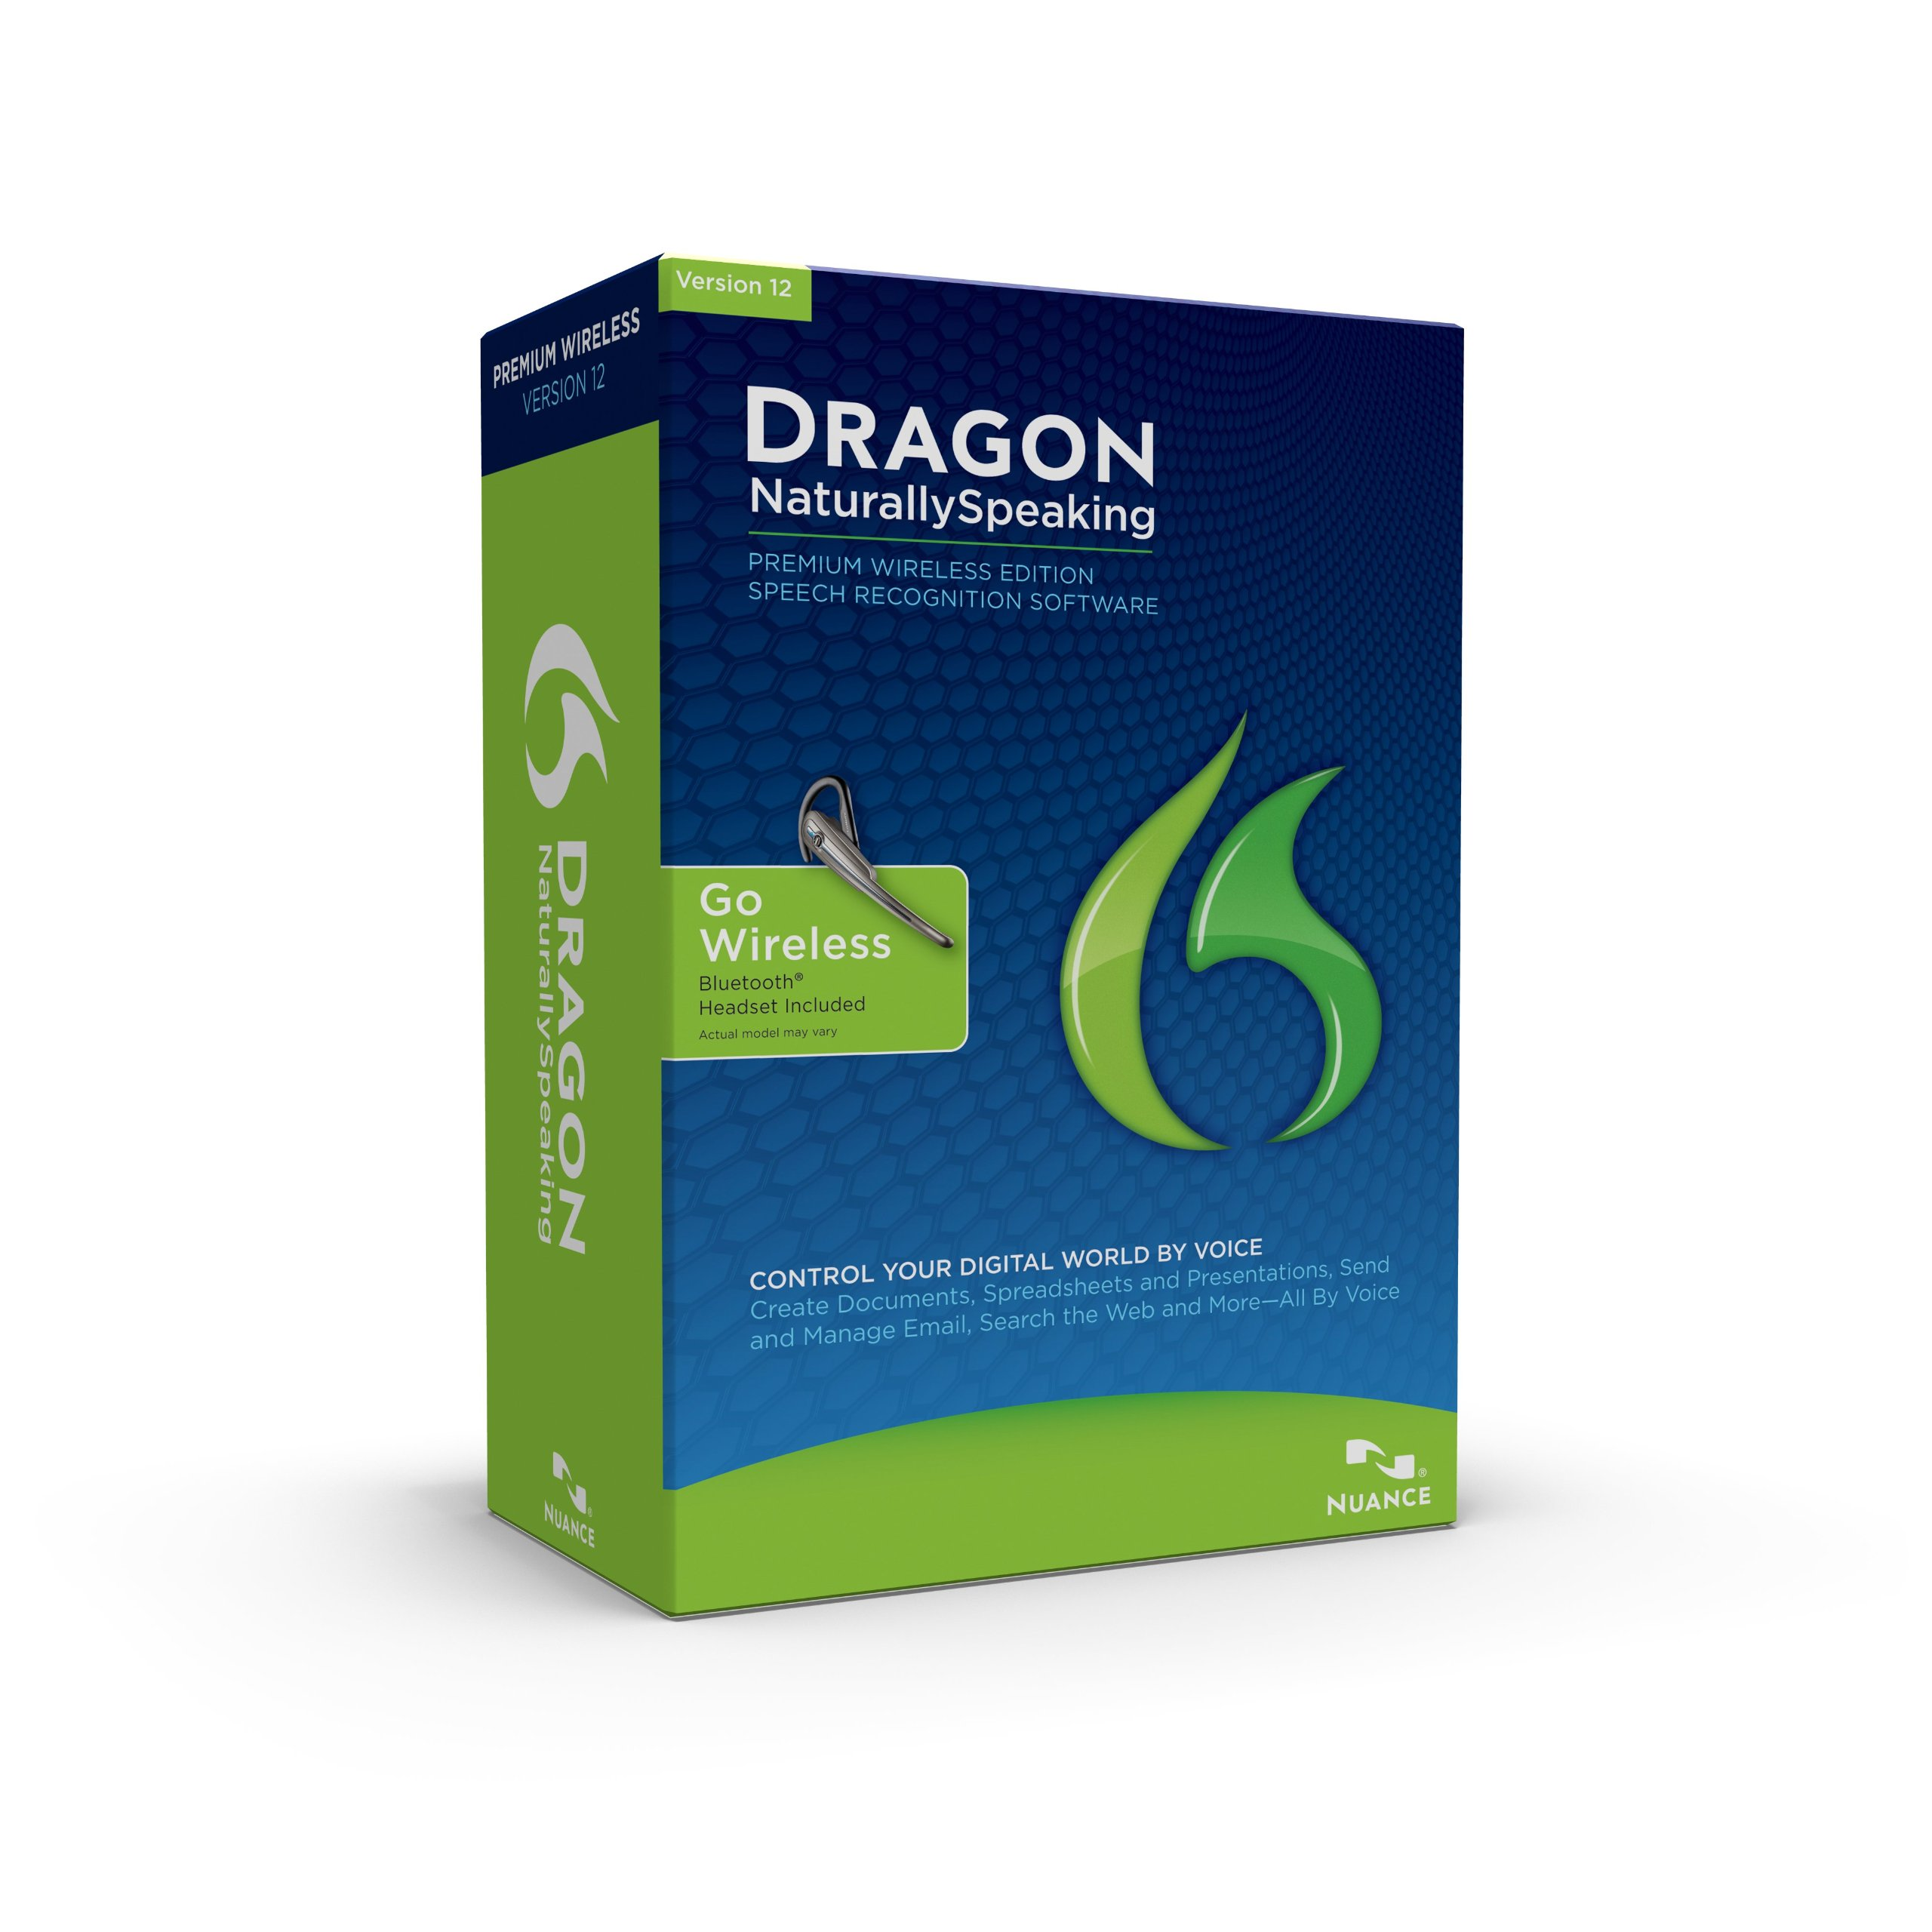 Dragon NaturallySpeaking Premium 12 Bluetooth (Wireless), English (Old Version) by Nuance Dragon